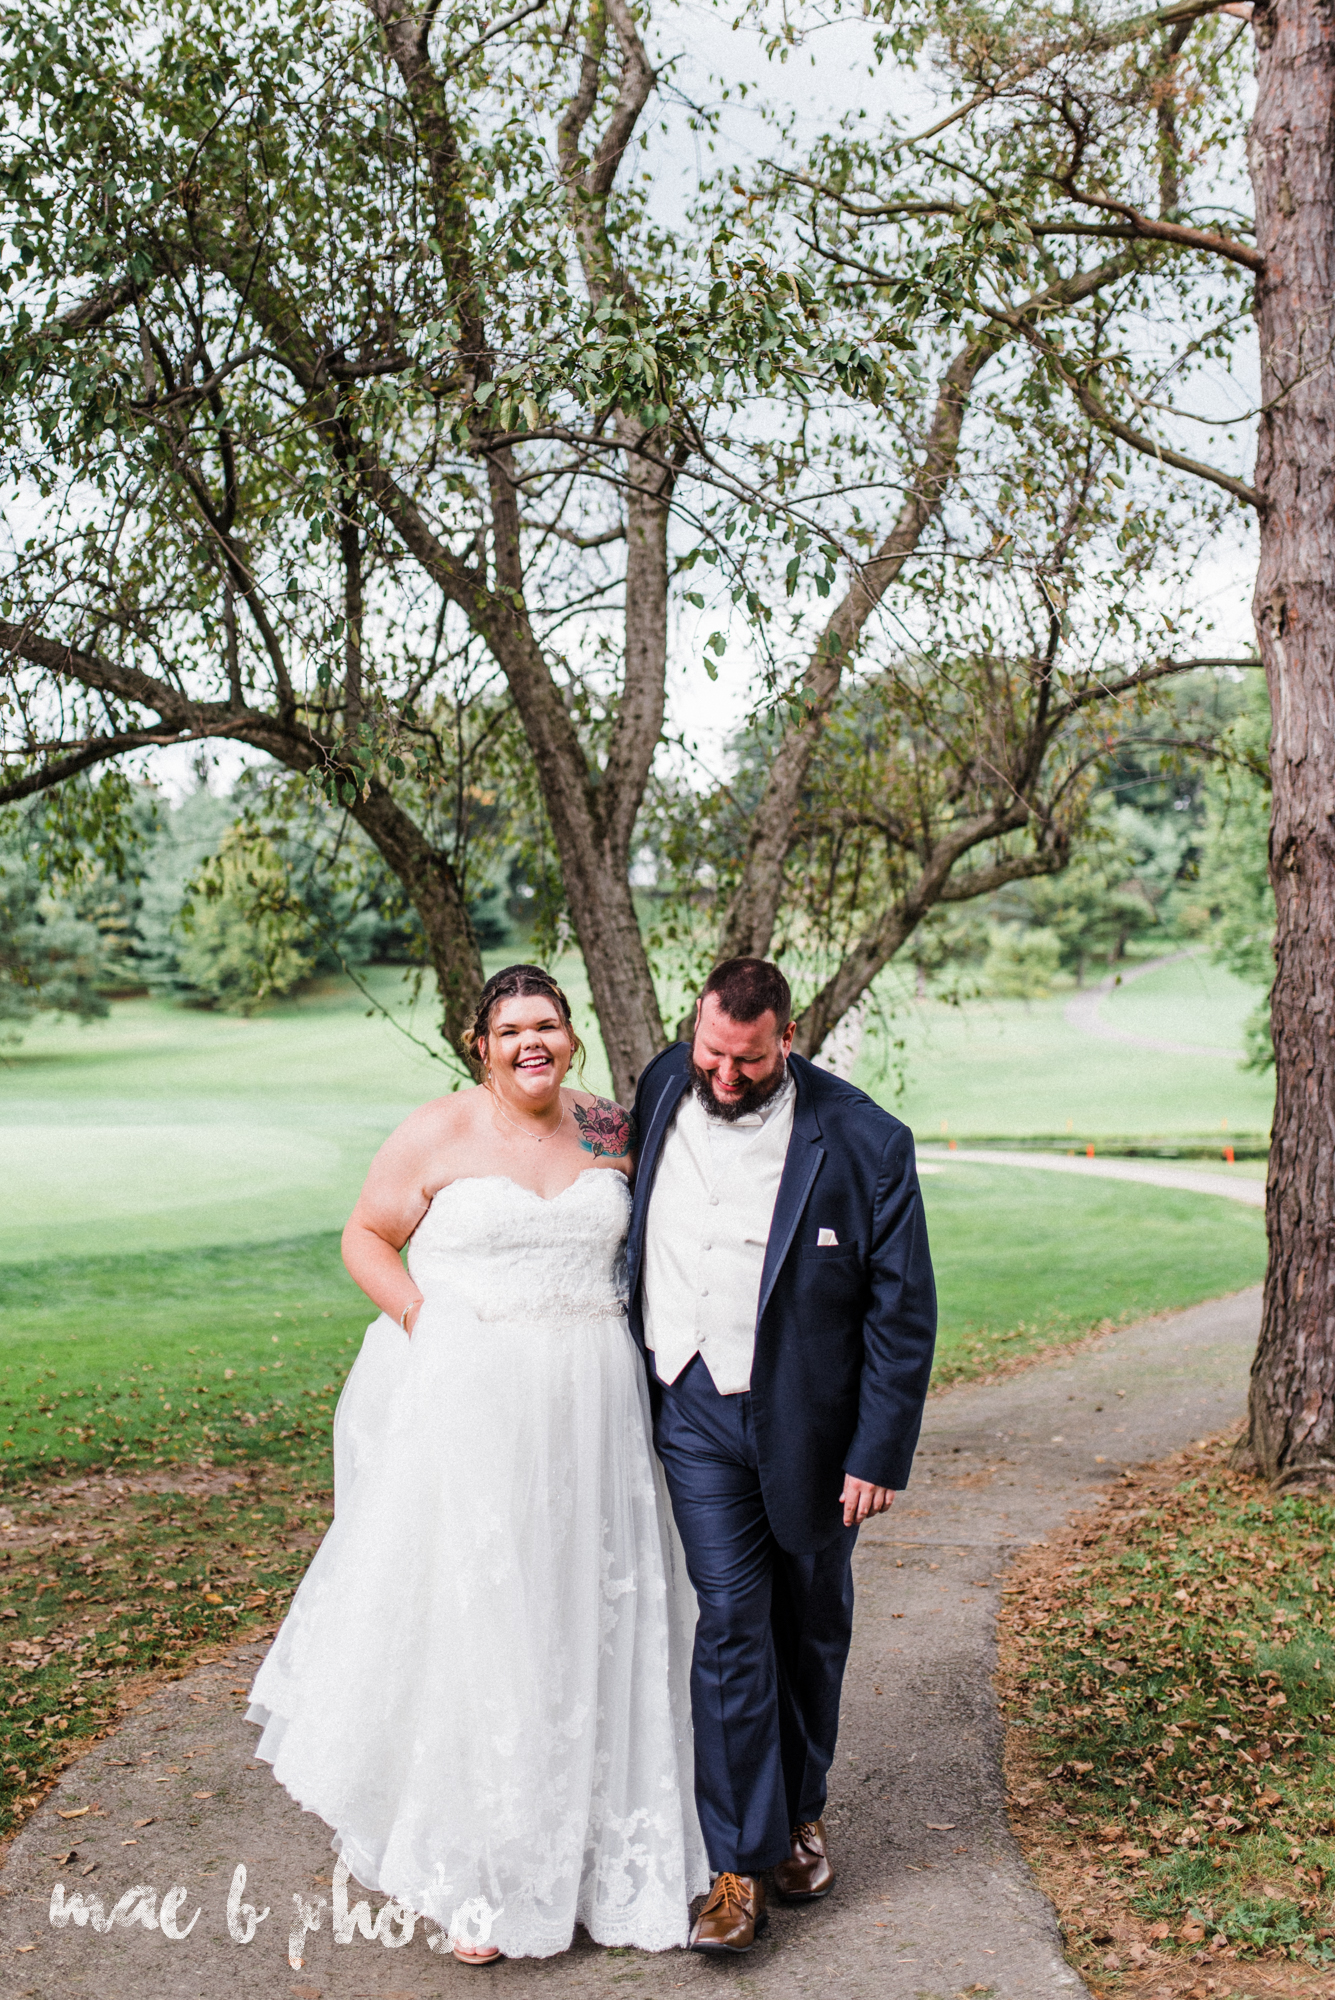 Kristina and ryan's personal vintage glam fall wedding at disalvo's station restaurant and the arnold palmer latrobe country club in latrobe, pa photographed by youngstown wedding photographer mae b photo-45.jpg